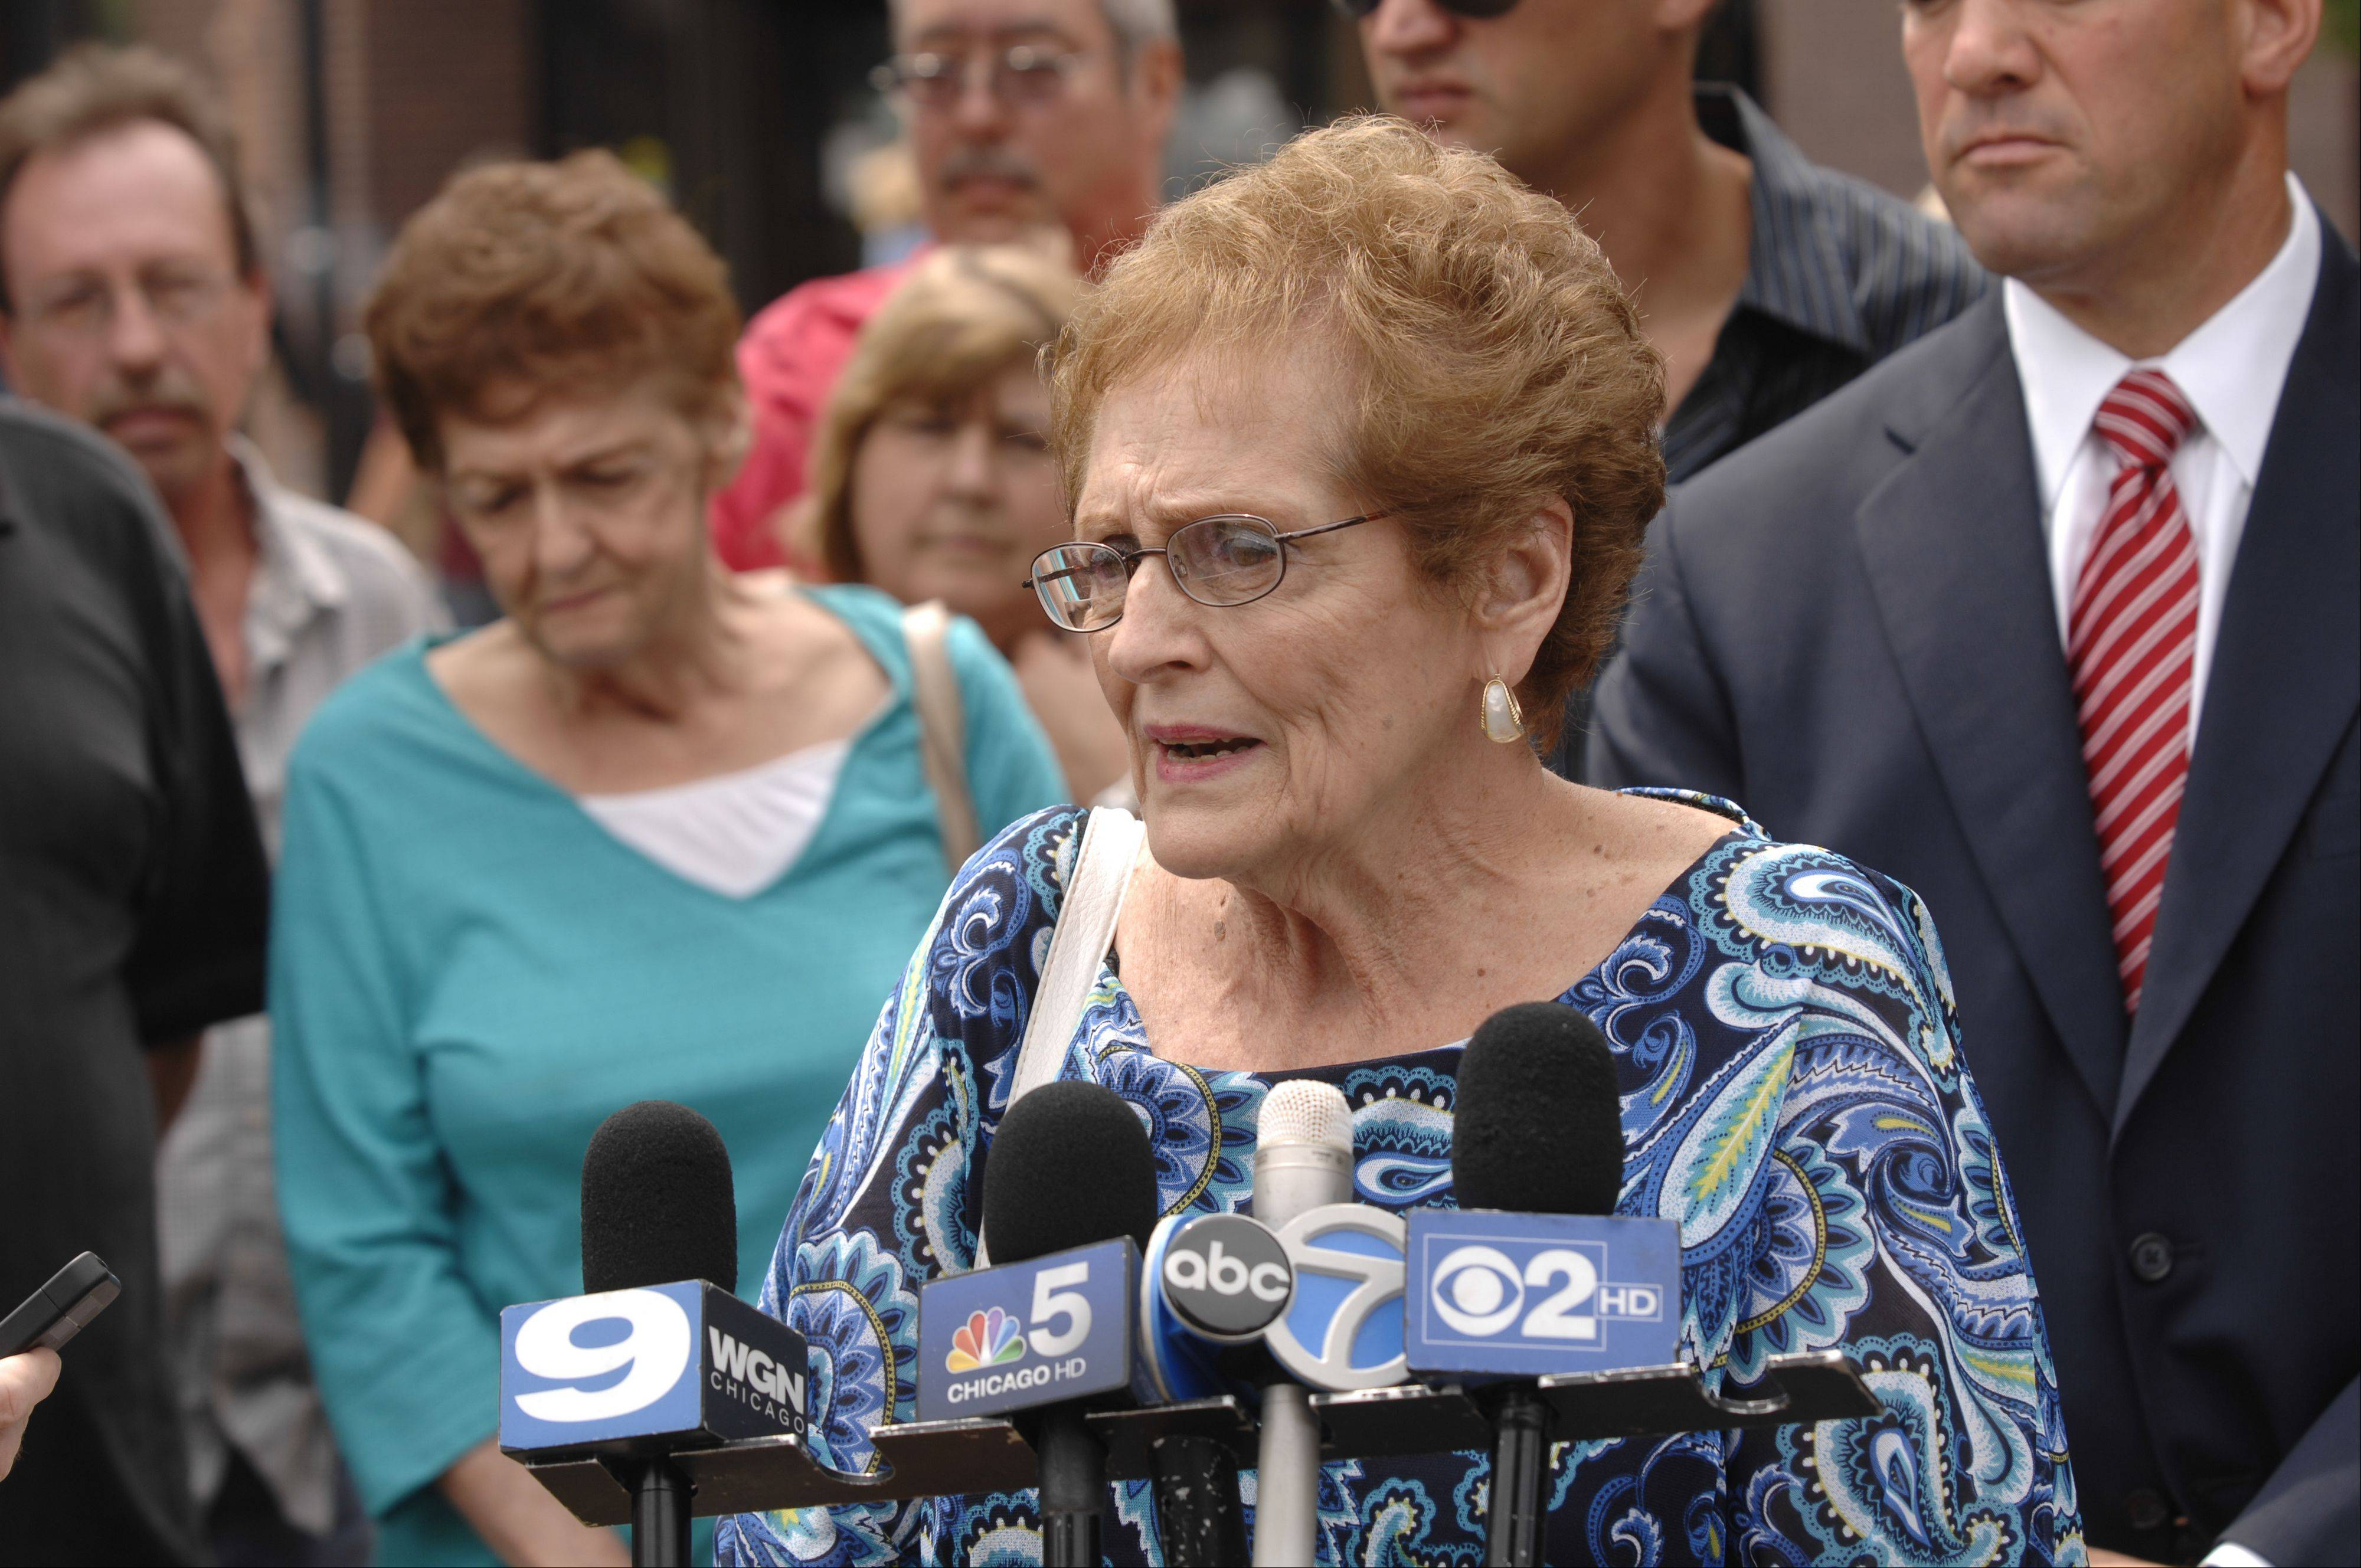 Judy Pokorny, mother of murder victim Jeffery Kramer, reacts Monday to the 75-year sentence handed down to Jacob Nodarse for the triple murder of members of the Kramer family in Darien in 2010.